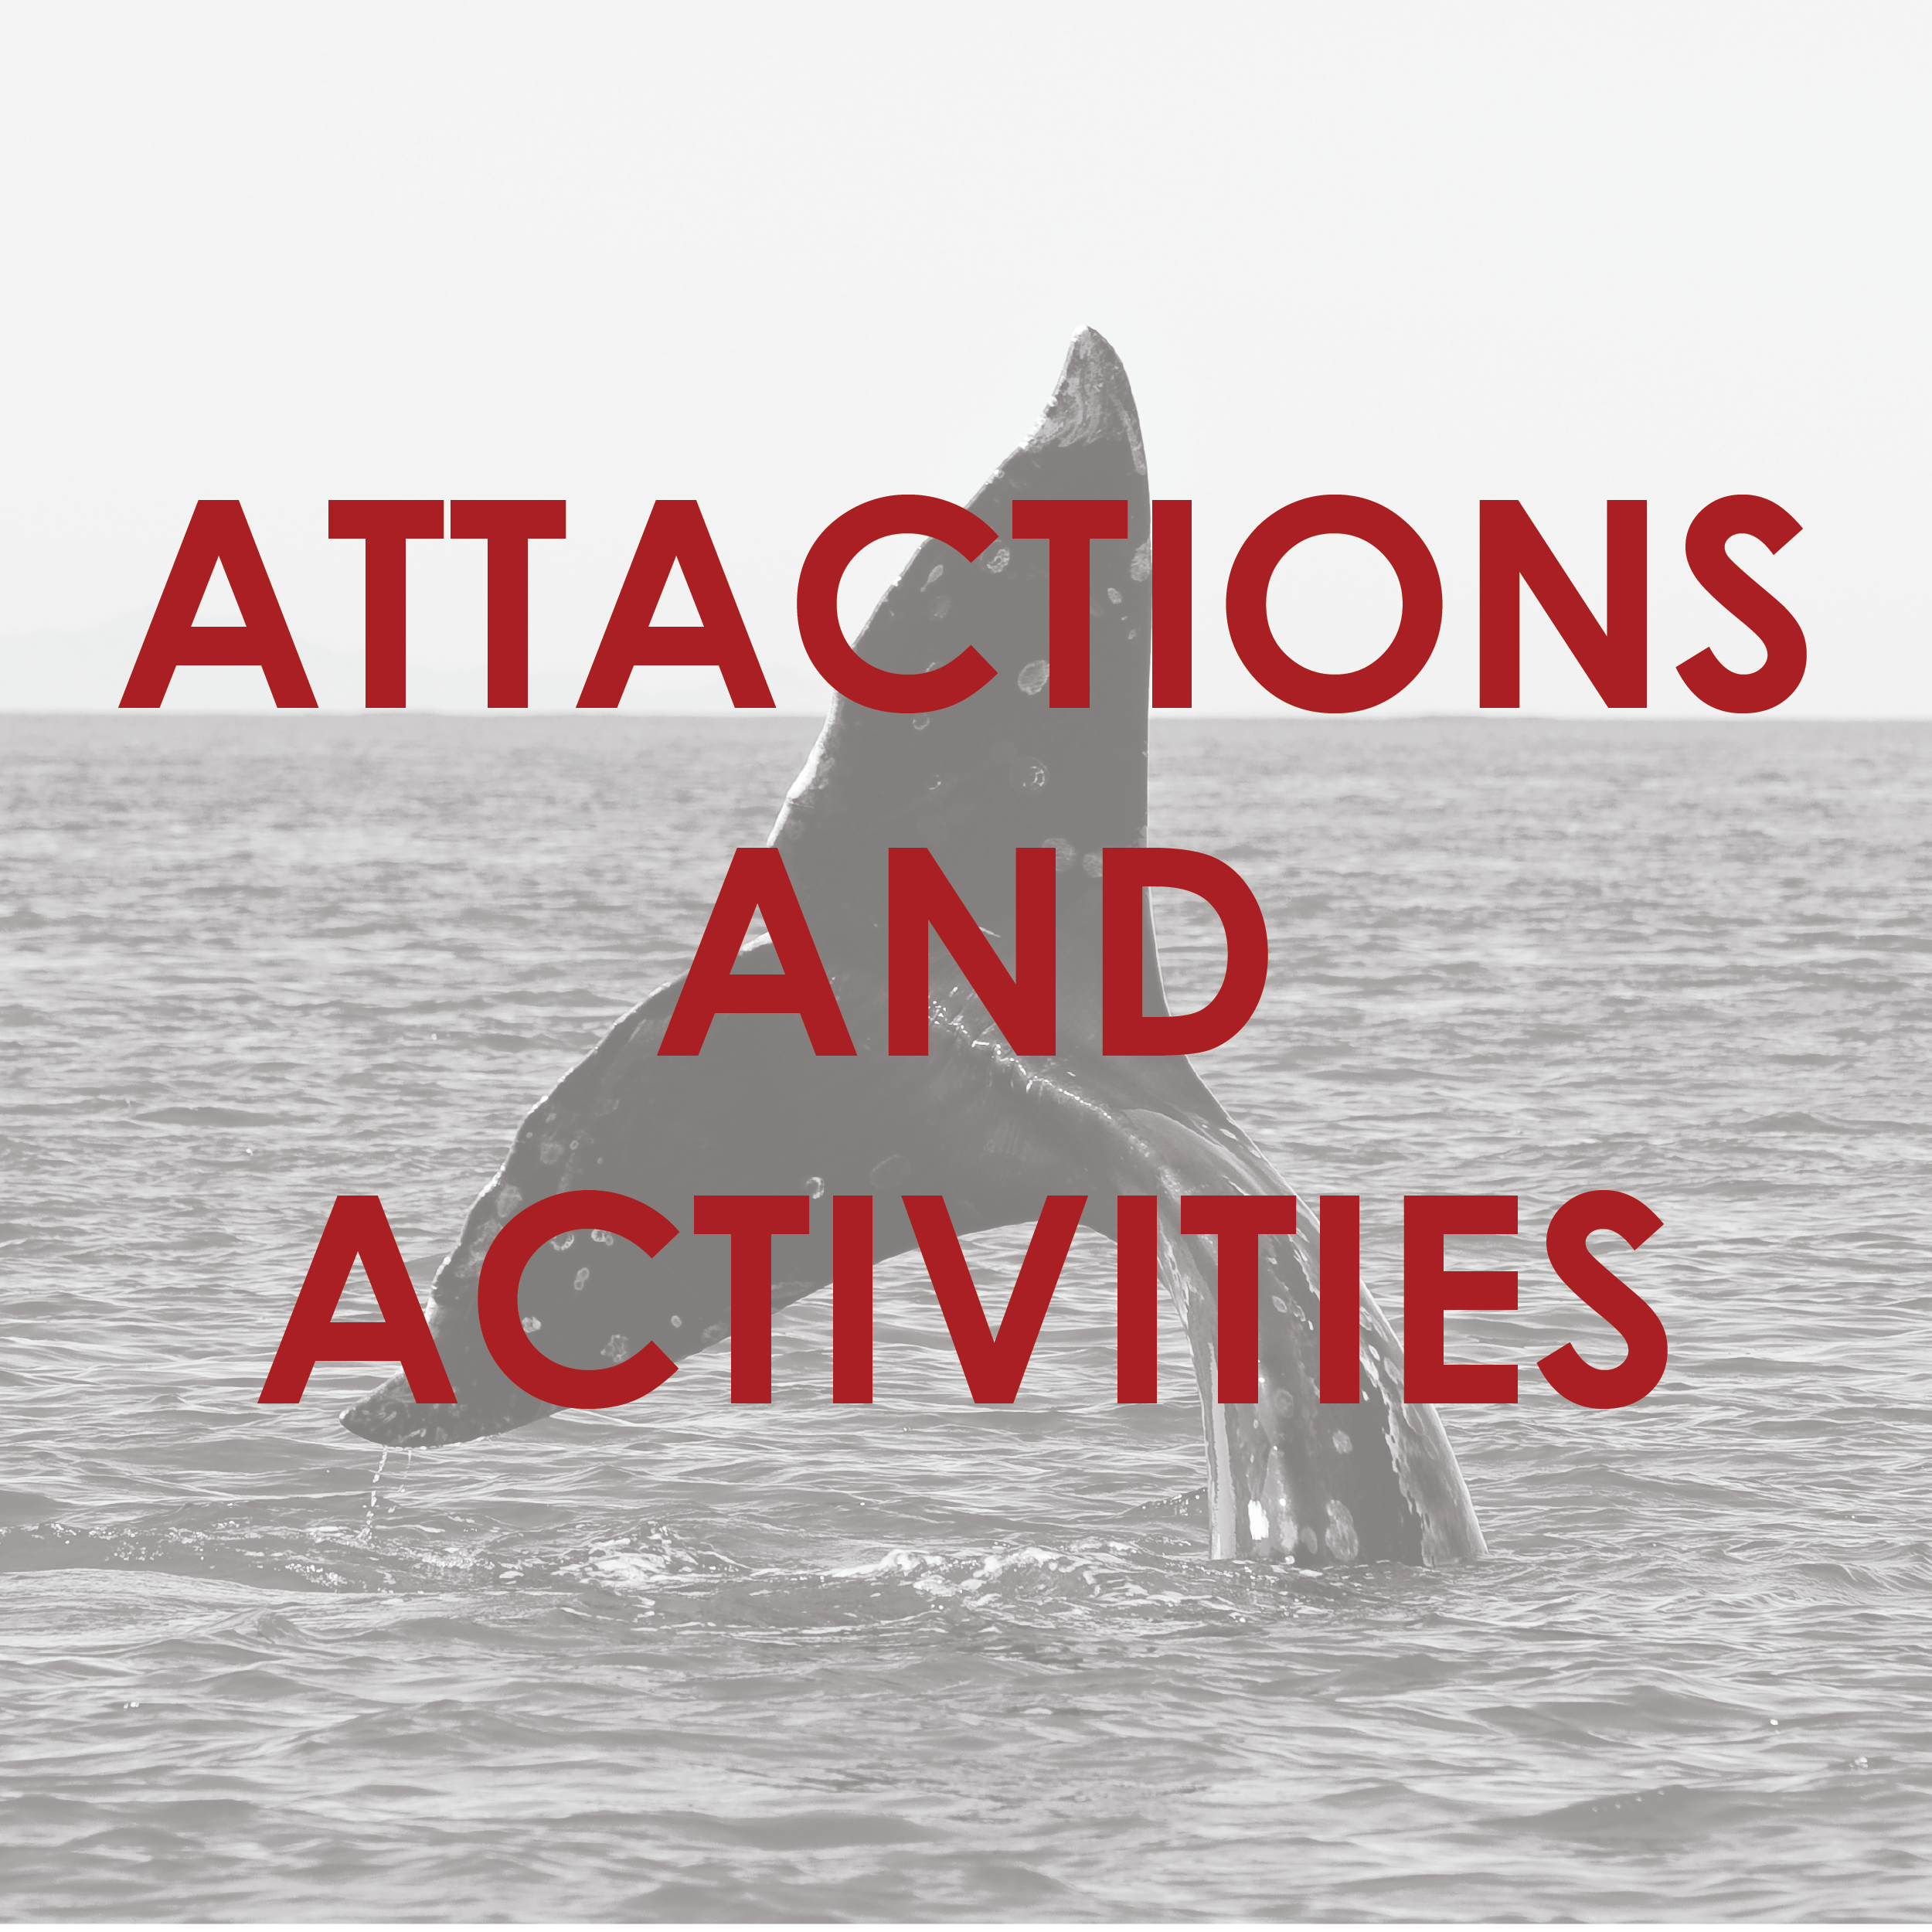 Attract_B&Ws-16